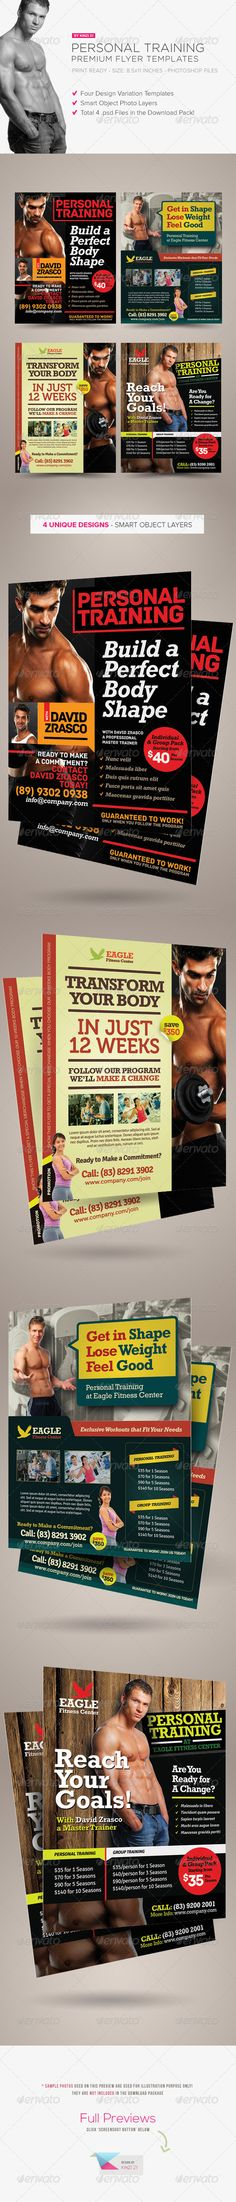 Personal Training Flyers are design templates created for sale on Graphic River. More info of the template and how to get the template sourcefiles can be found on this page, http://graphicriver.net/item/personal-training-flyers/5143213?r=kinzi21